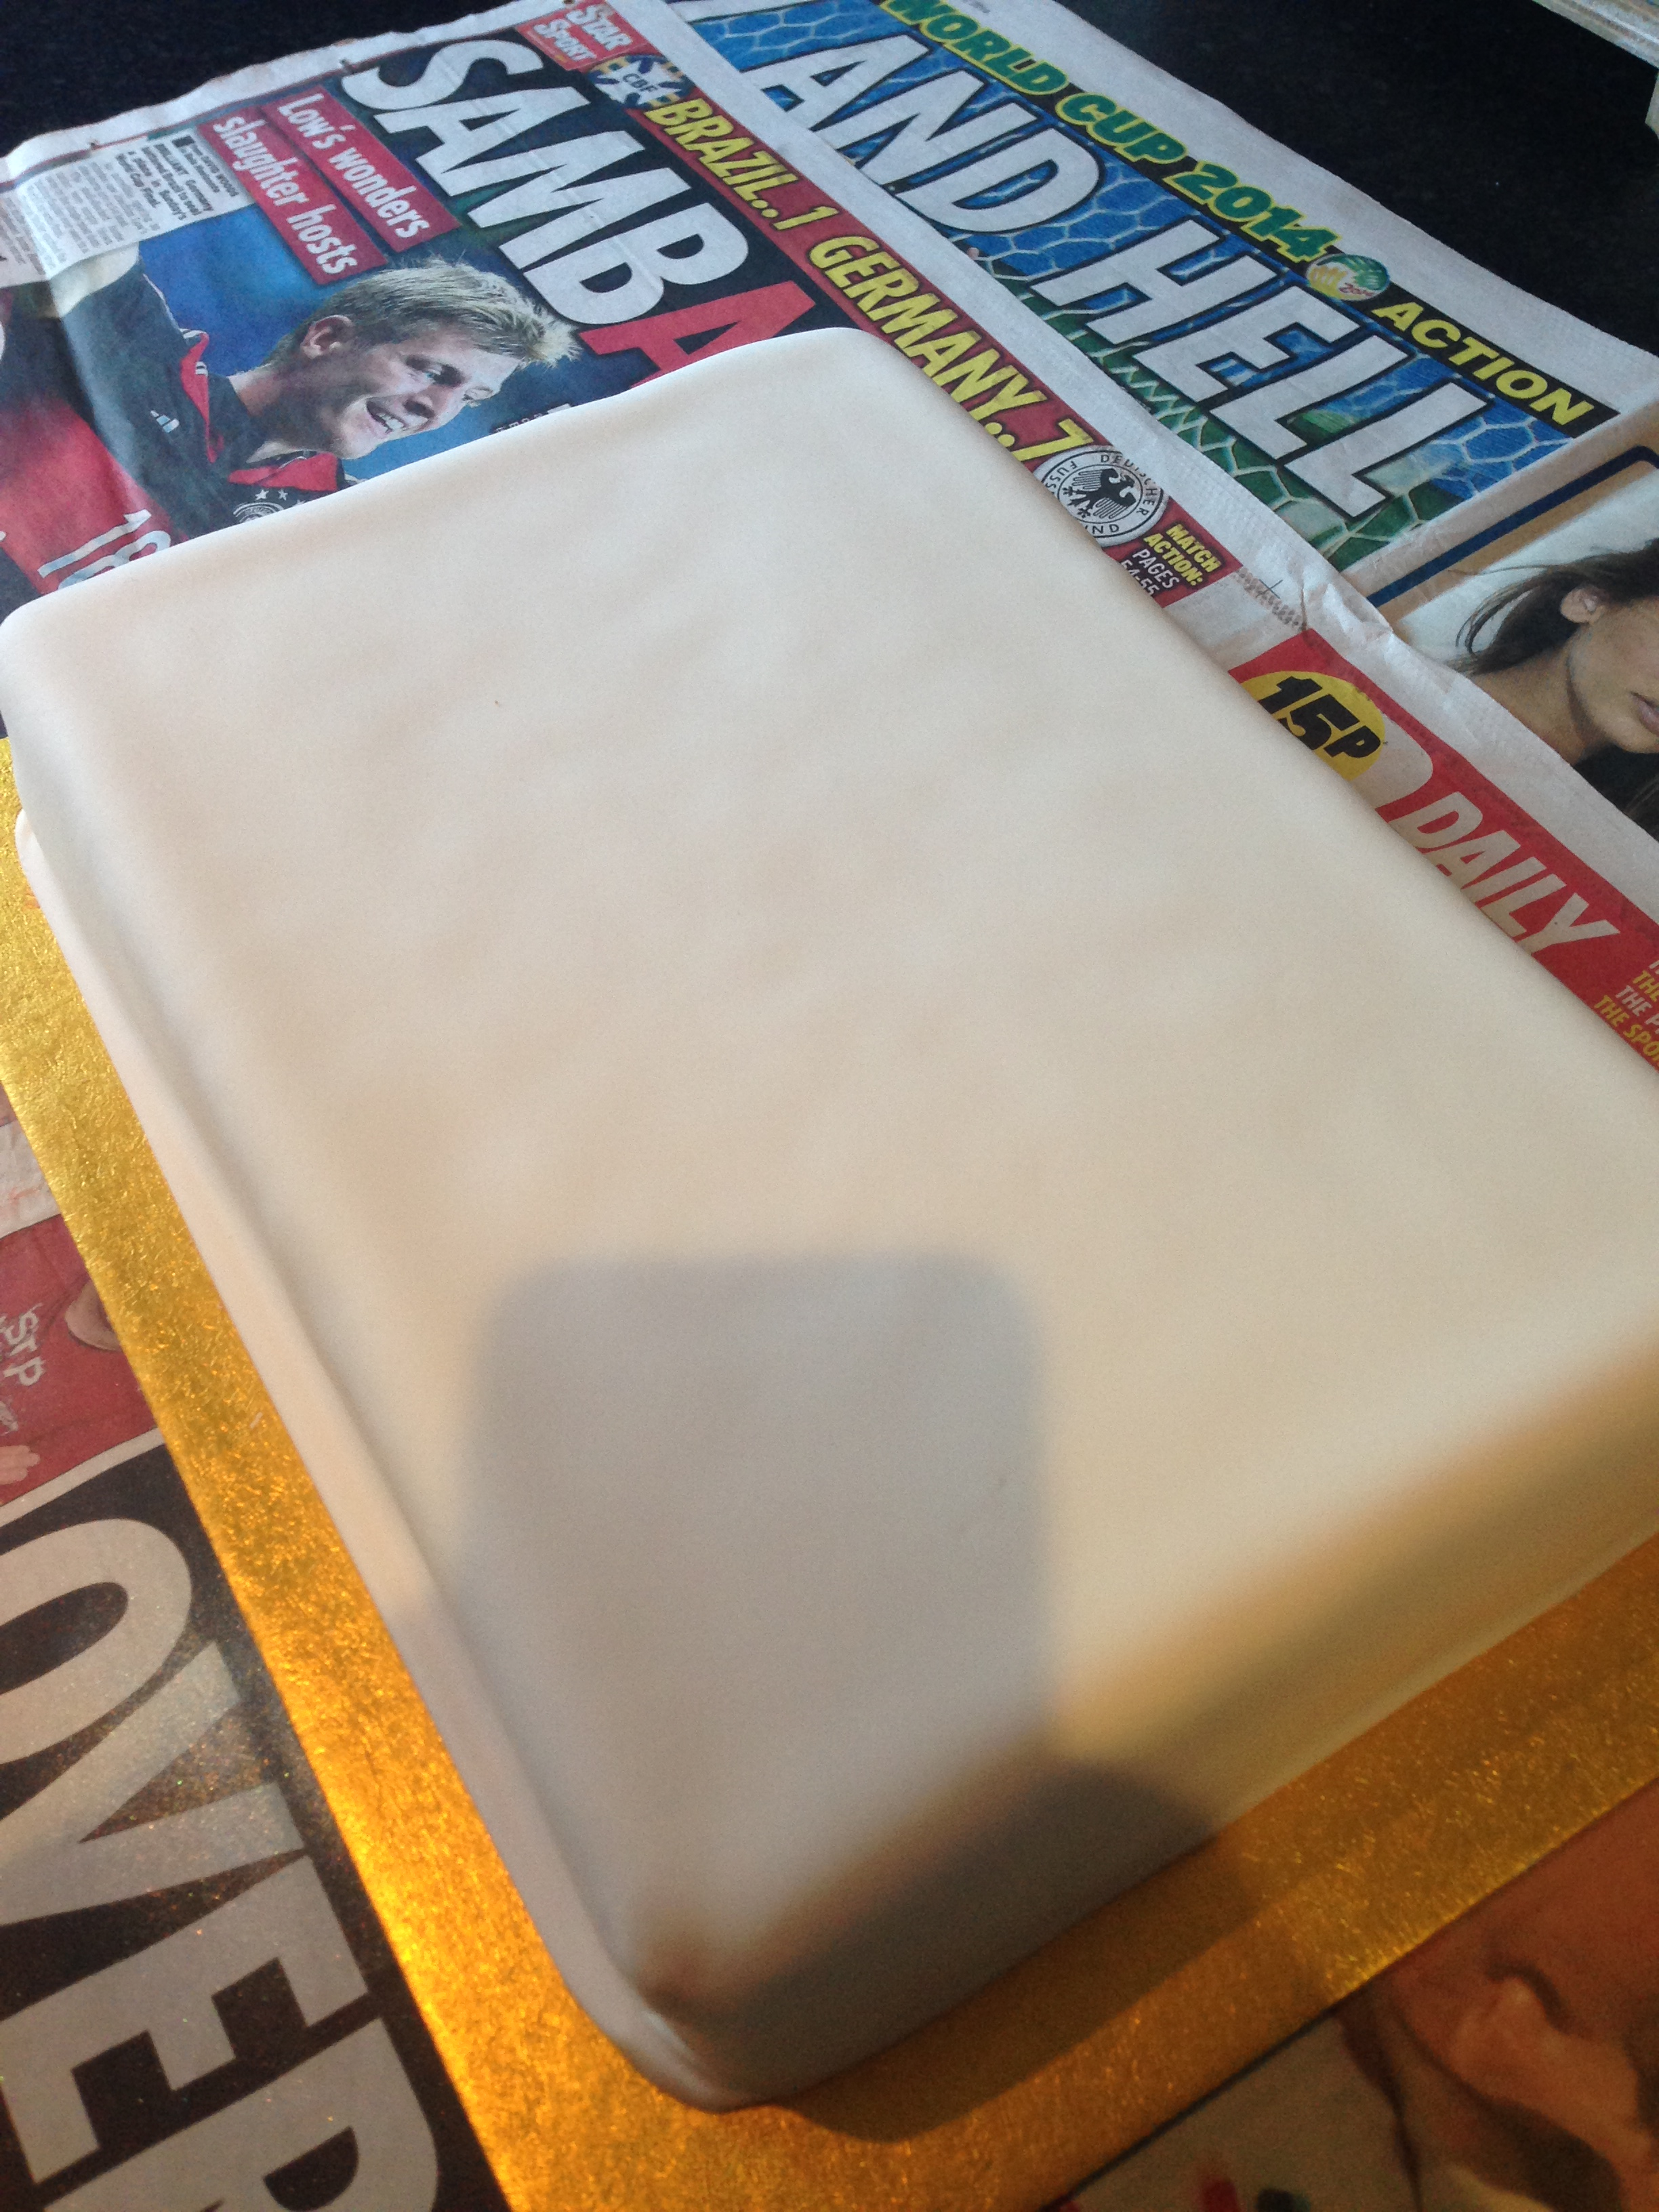 Design Your Own Photo Cake : Cheats Frozen Birthday Cake.   Diary of a Fat Bottomed Girl